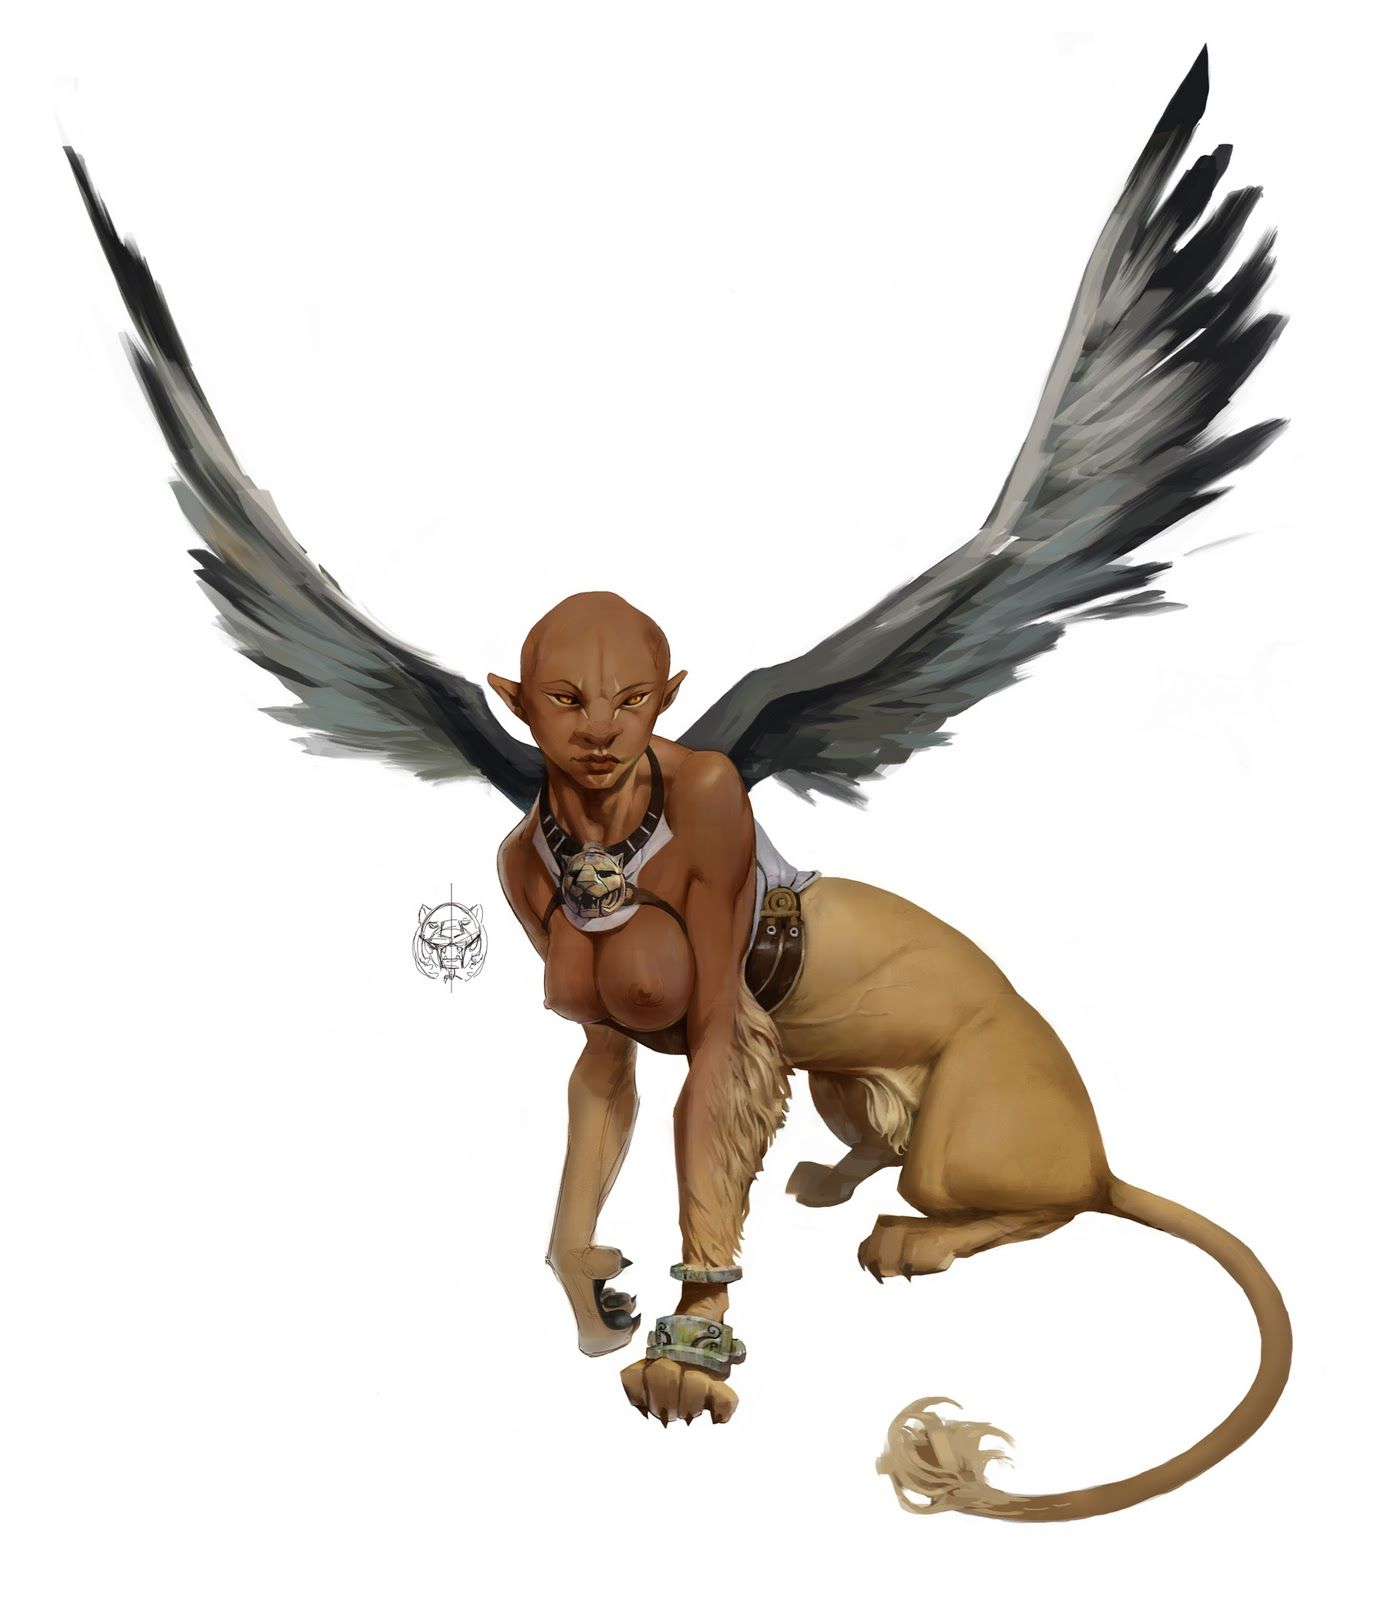 ★Sphinx★ According to Hesiod, she was a daughter of Orthus